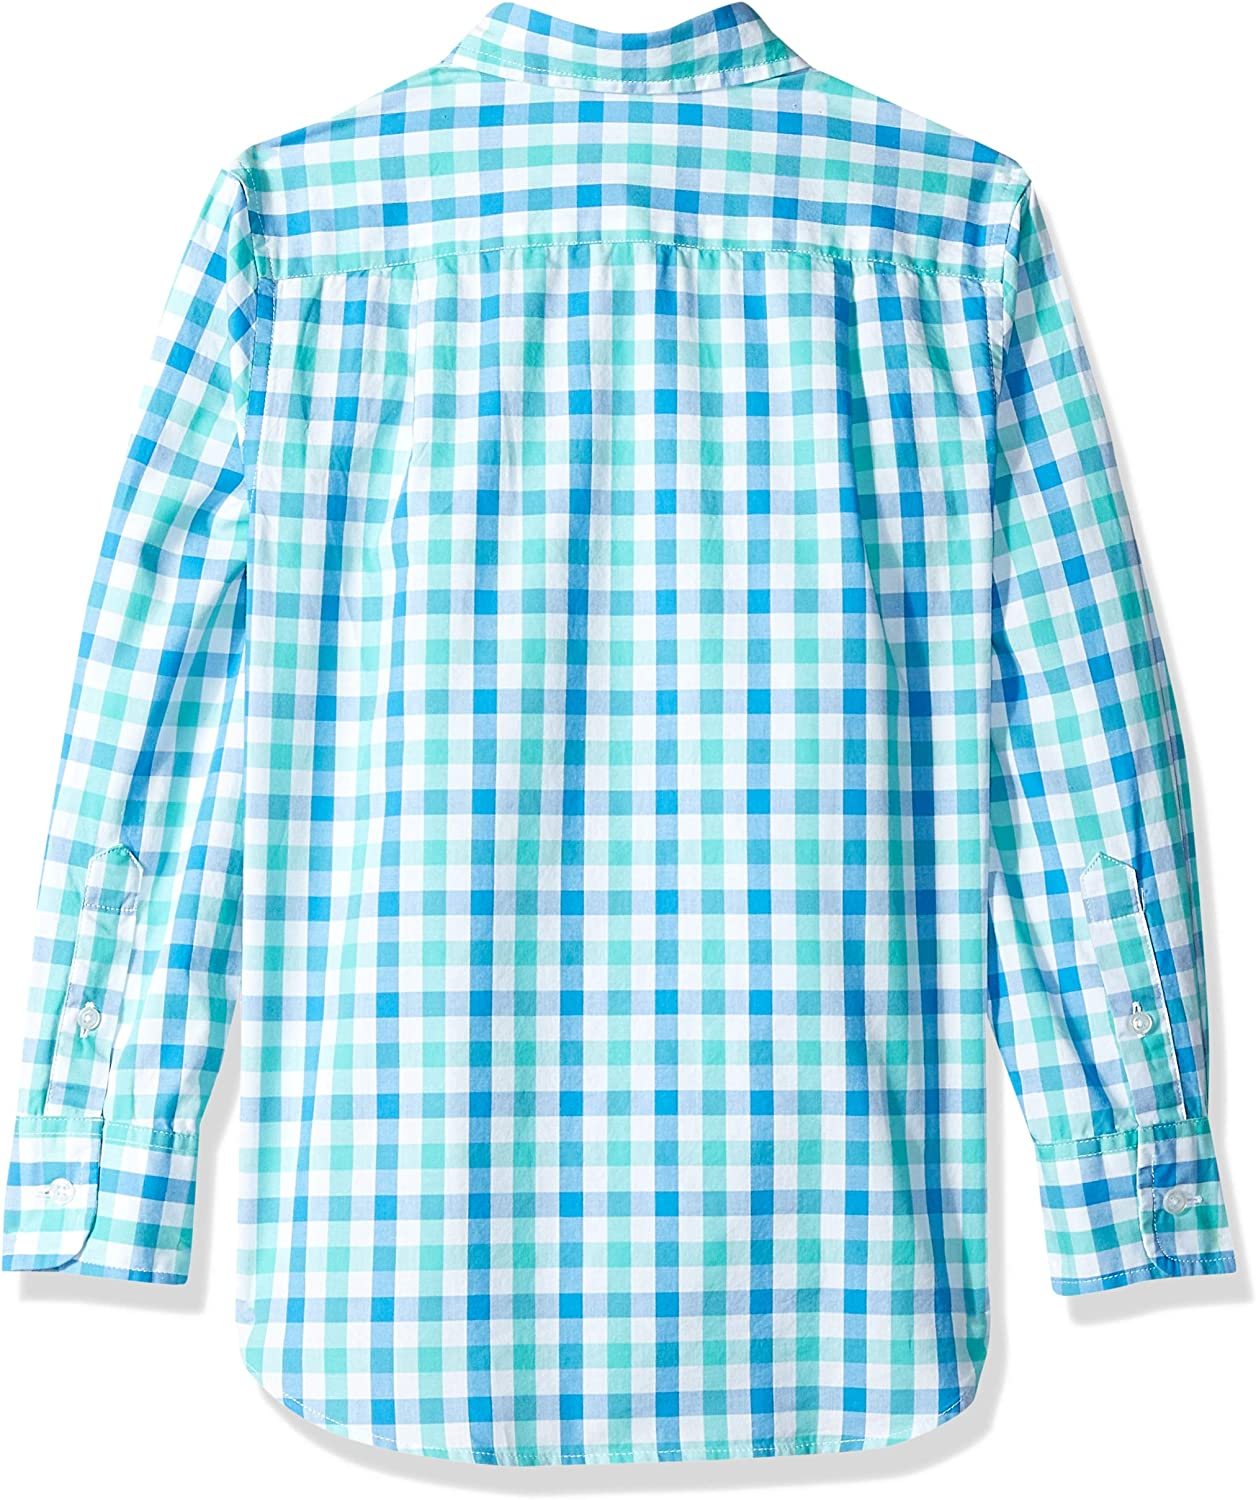 Crew Brand LOOK by crewcuts Boys Long Sleeve Gingham Shirt // J